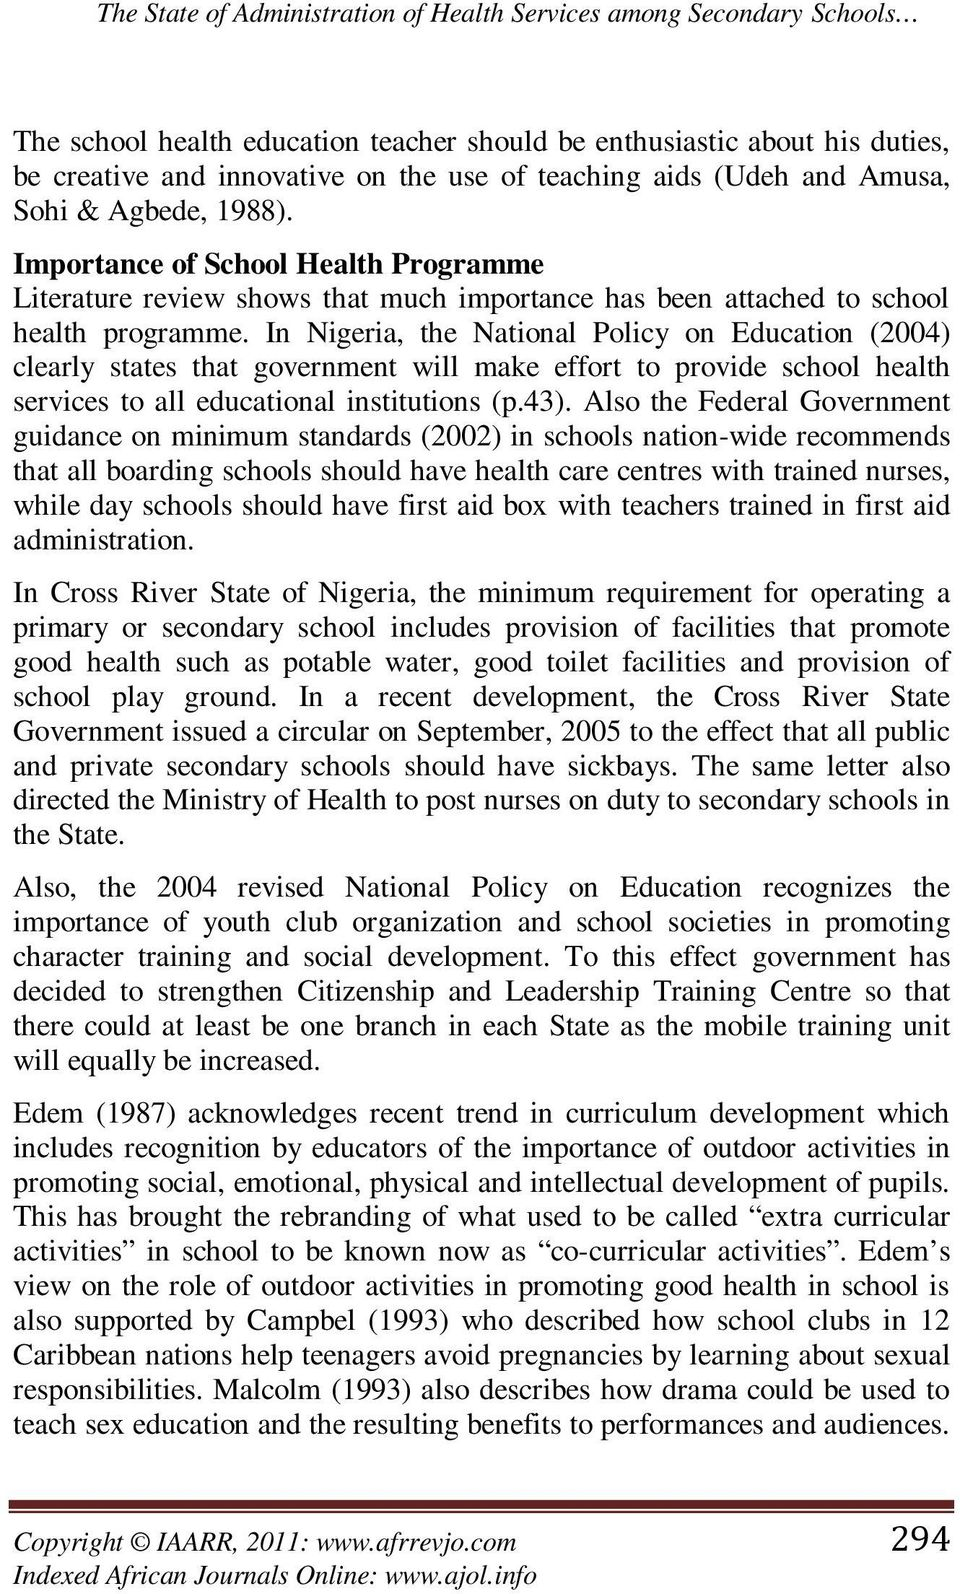 In Nigeria, the National Policy on Education (2004) clearly states that government will make effort to provide school health services to all educational institutions (p.43).